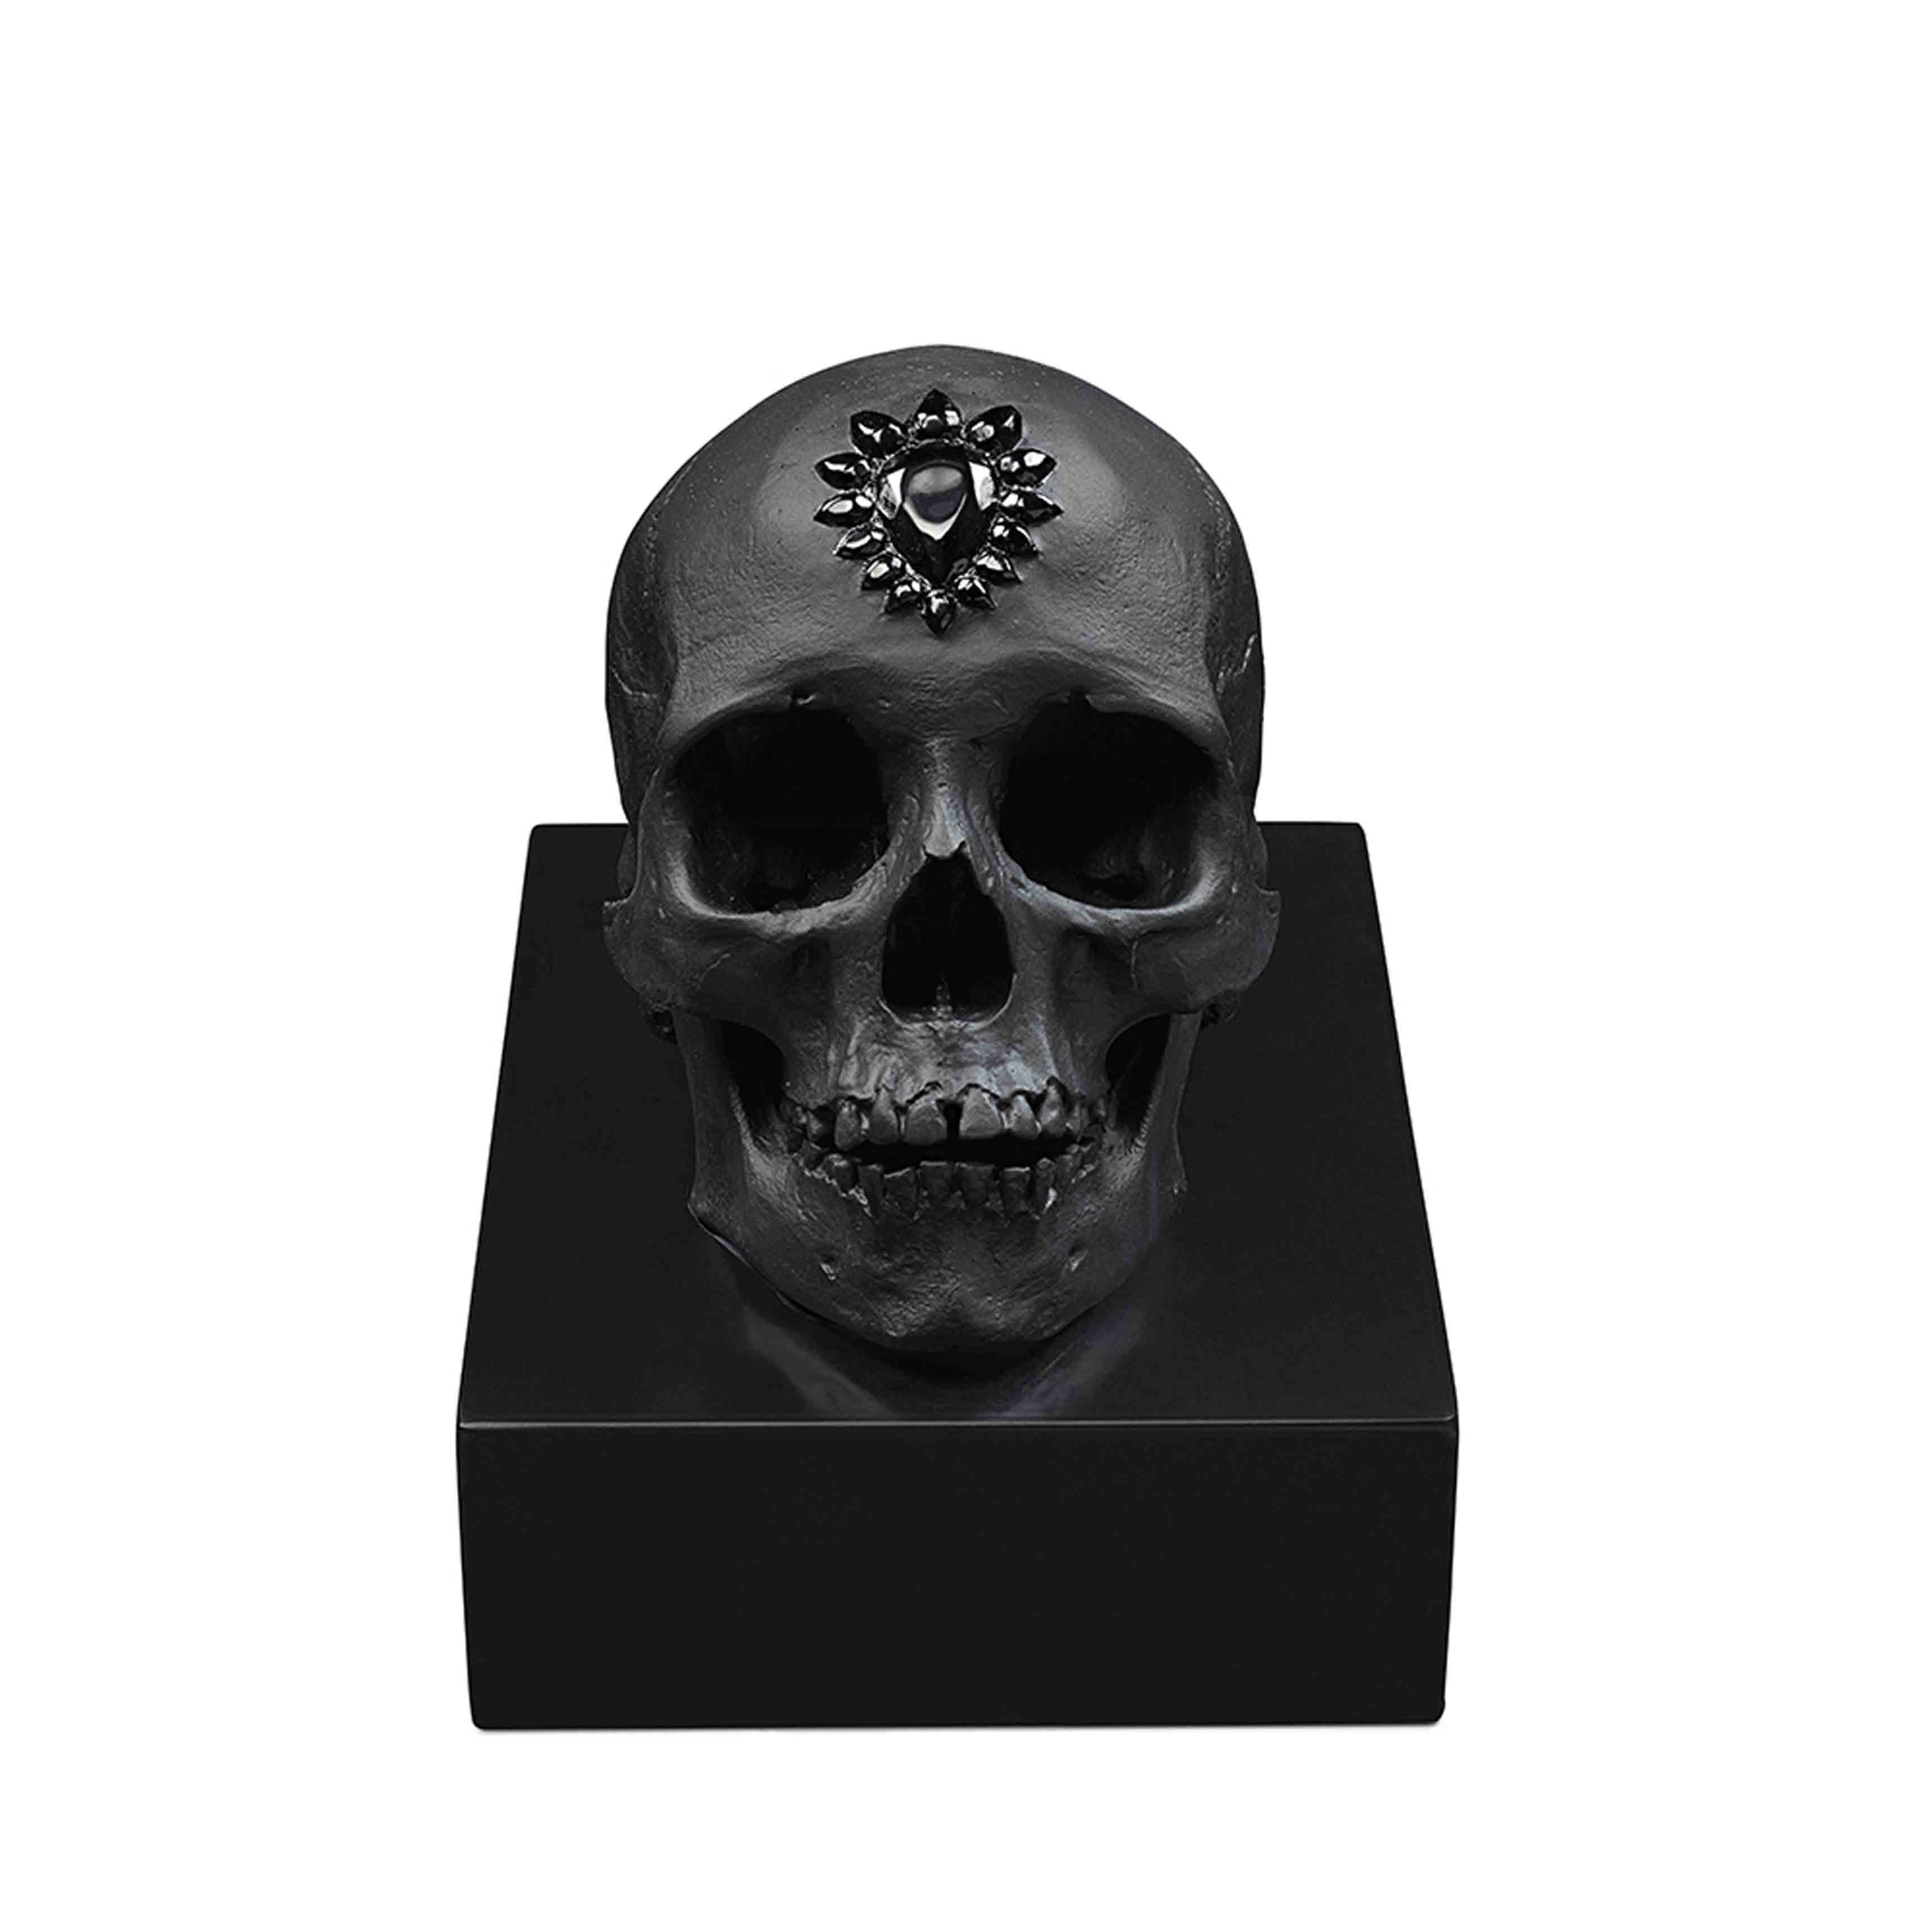 Damien Hirst, Eternal Sleep, 2017, © Damien Hirst, Science Ltd and Lalique. All rights reserved, DACS / ADAGP Paris. 2018